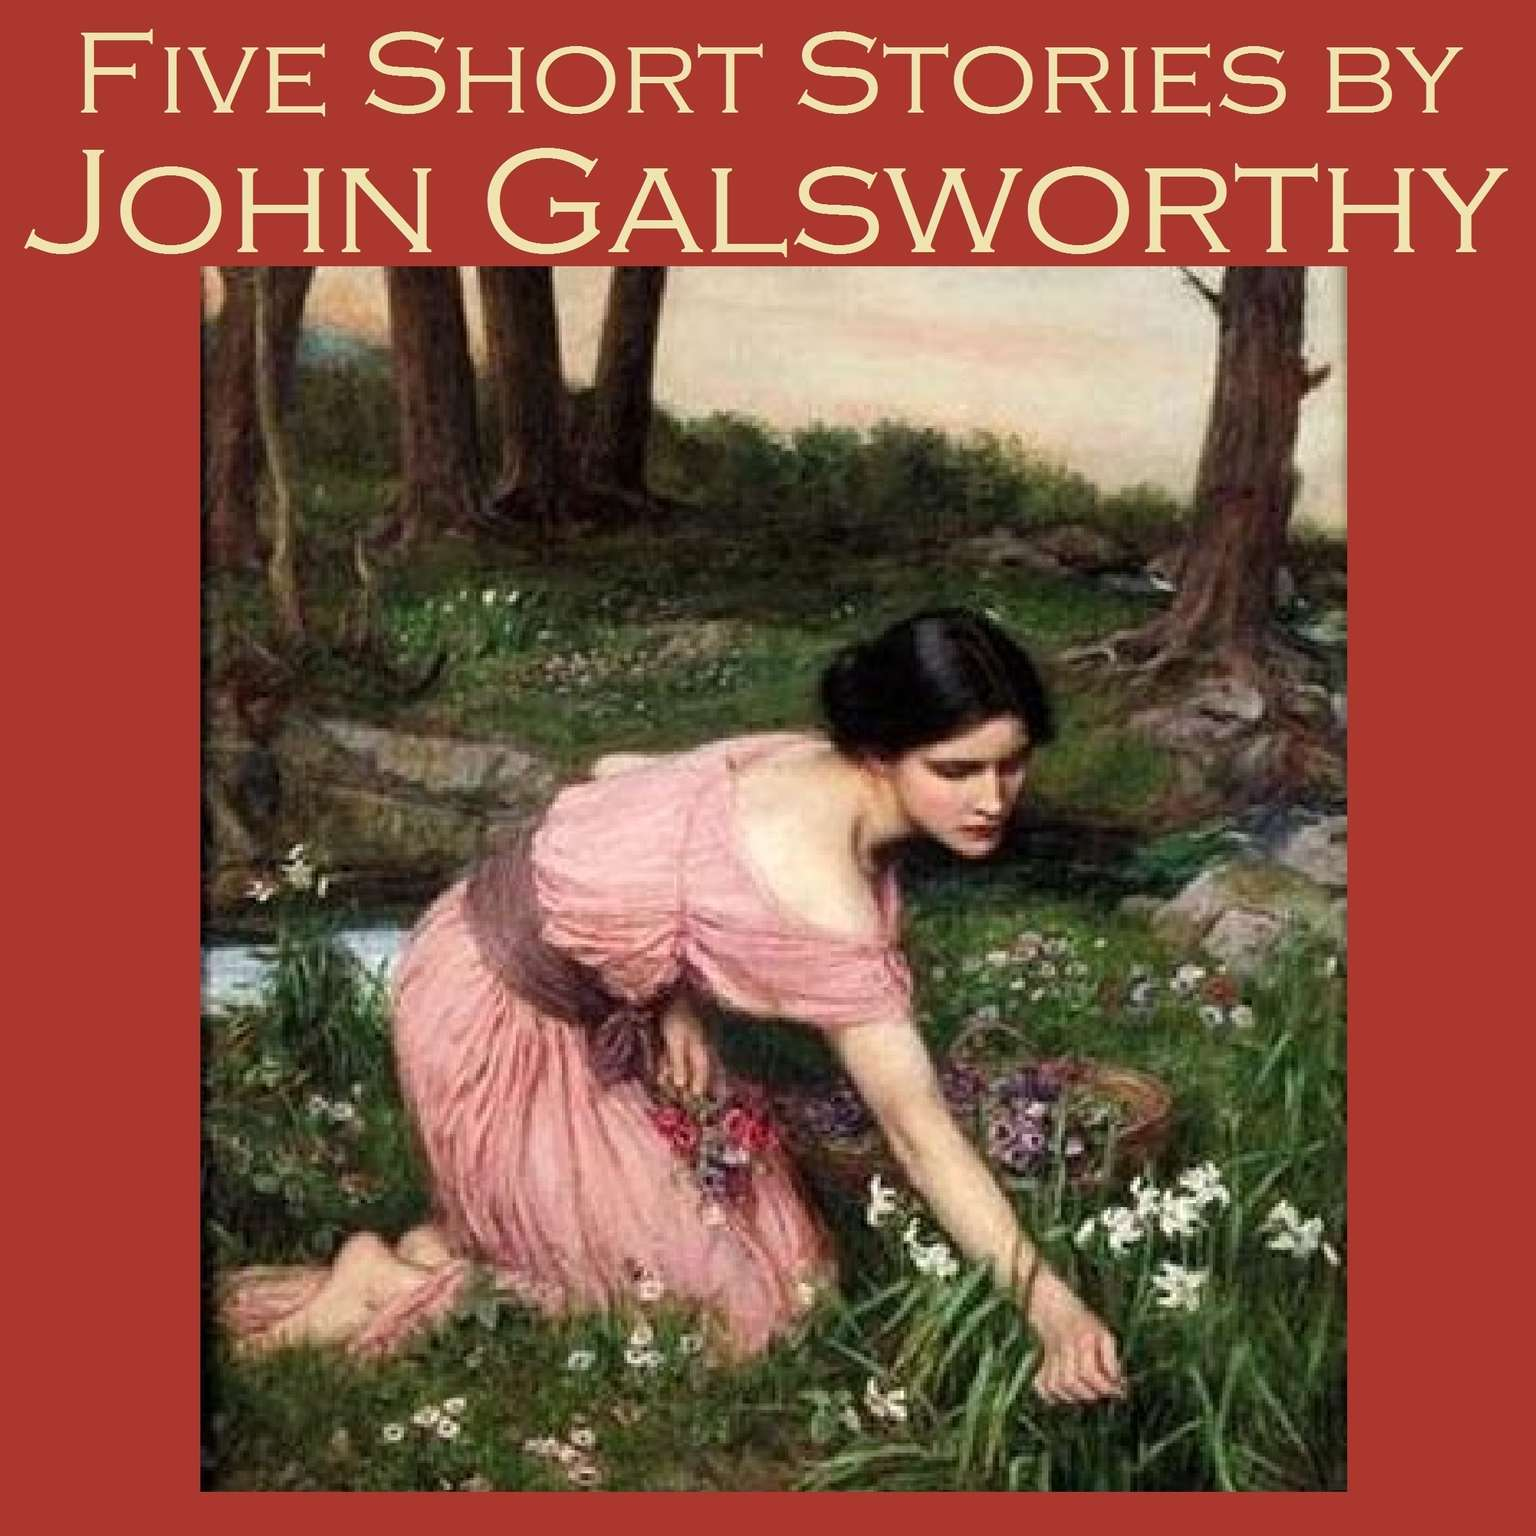 Five Short Stories by John Galsworthy Audiobook, by John Galsworthy